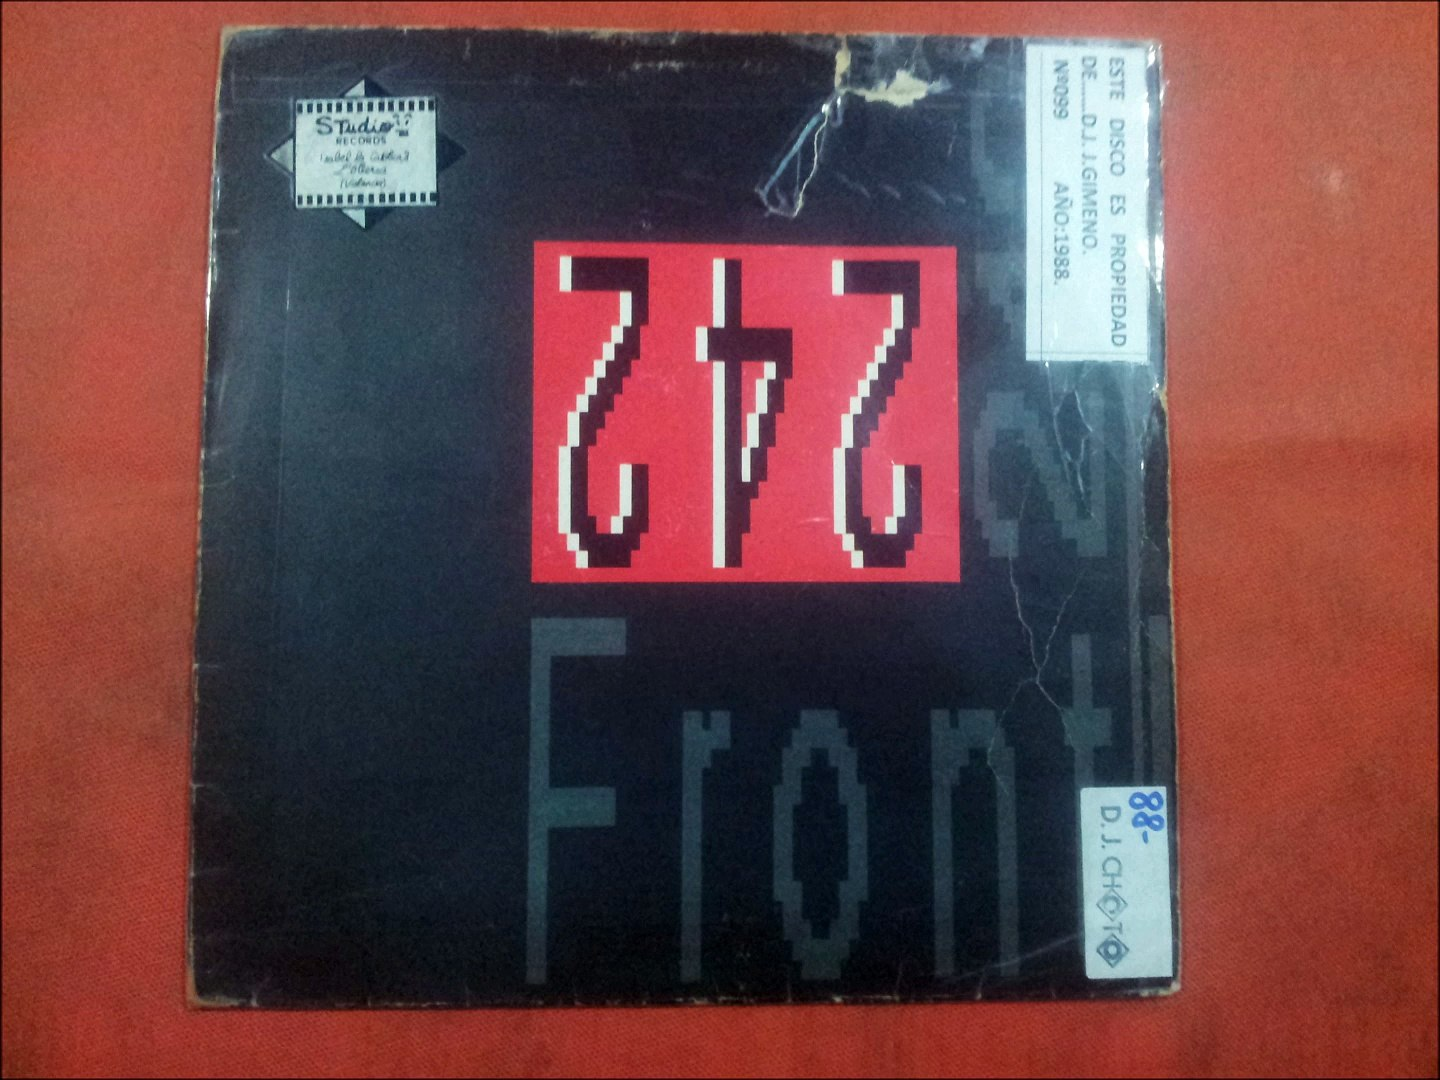 FRONT 242.''FRONT BY FRONT.''.(BLEND THE STRENGTHS.)(12'' LP.)(1988.)